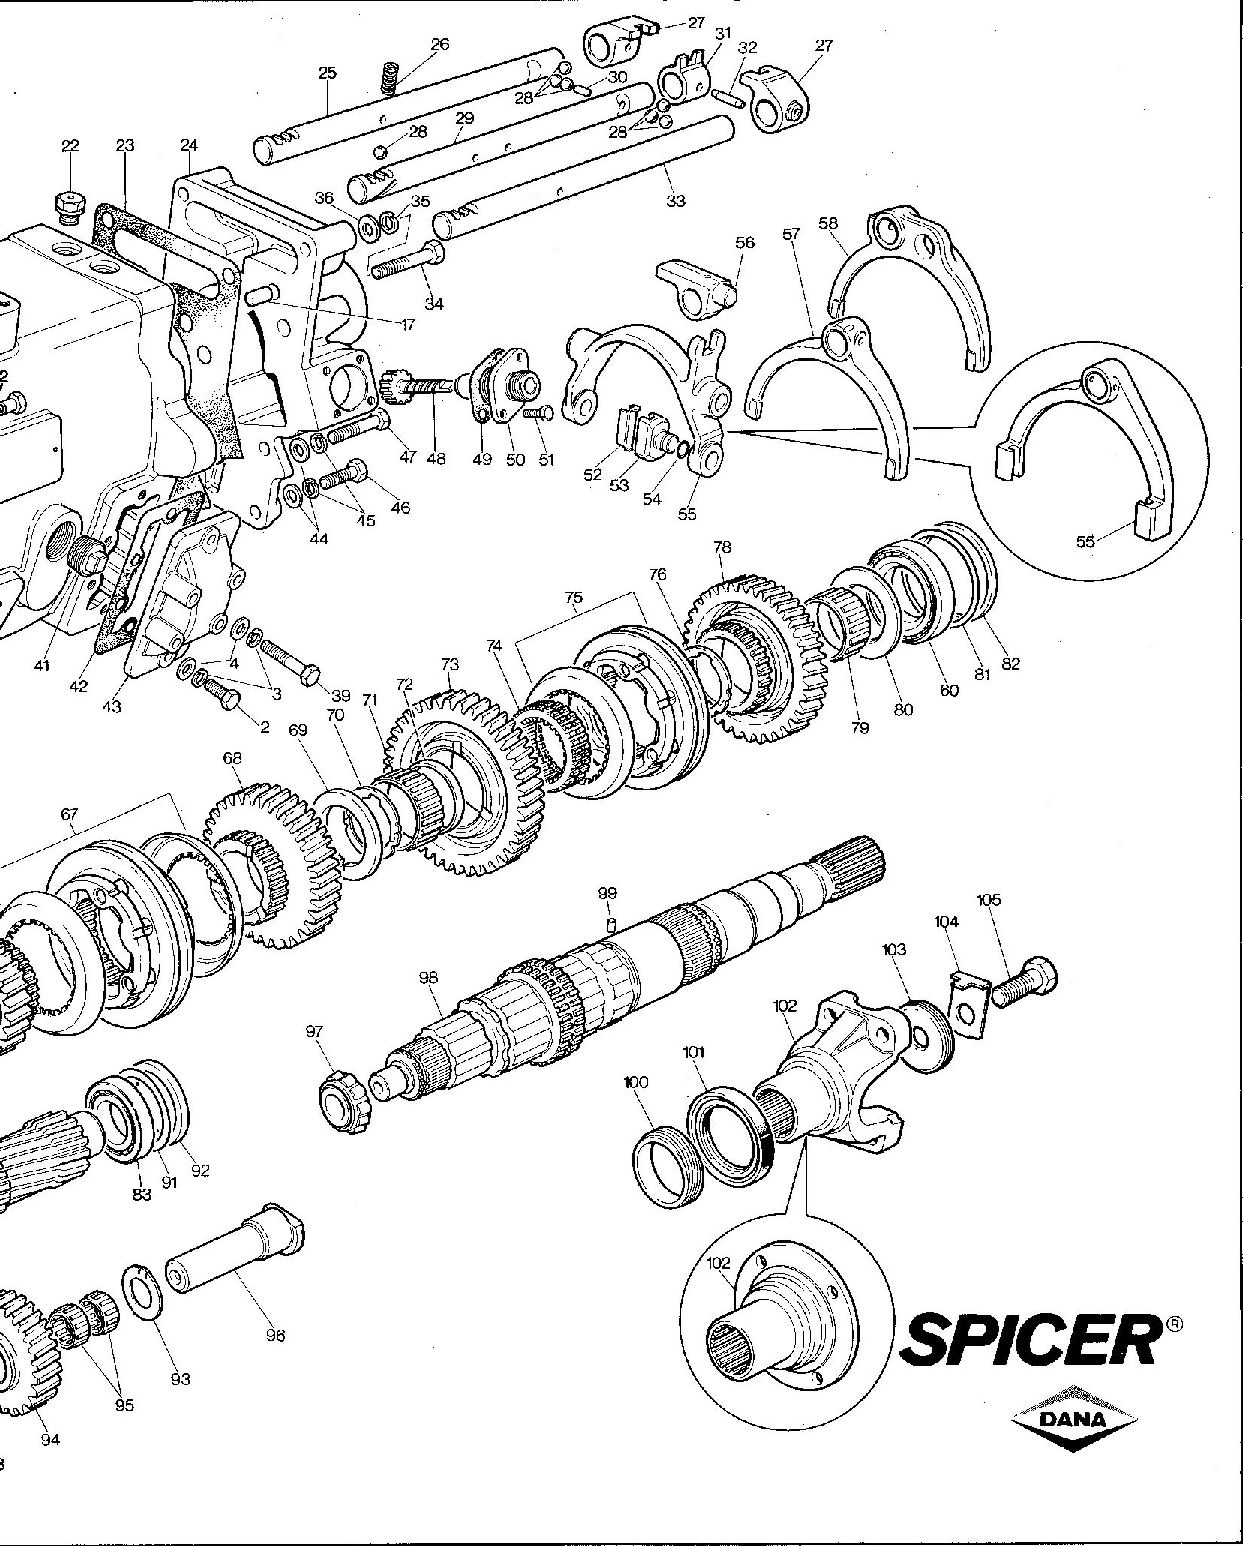 Index of /Workshop-manual/spicer gearbox